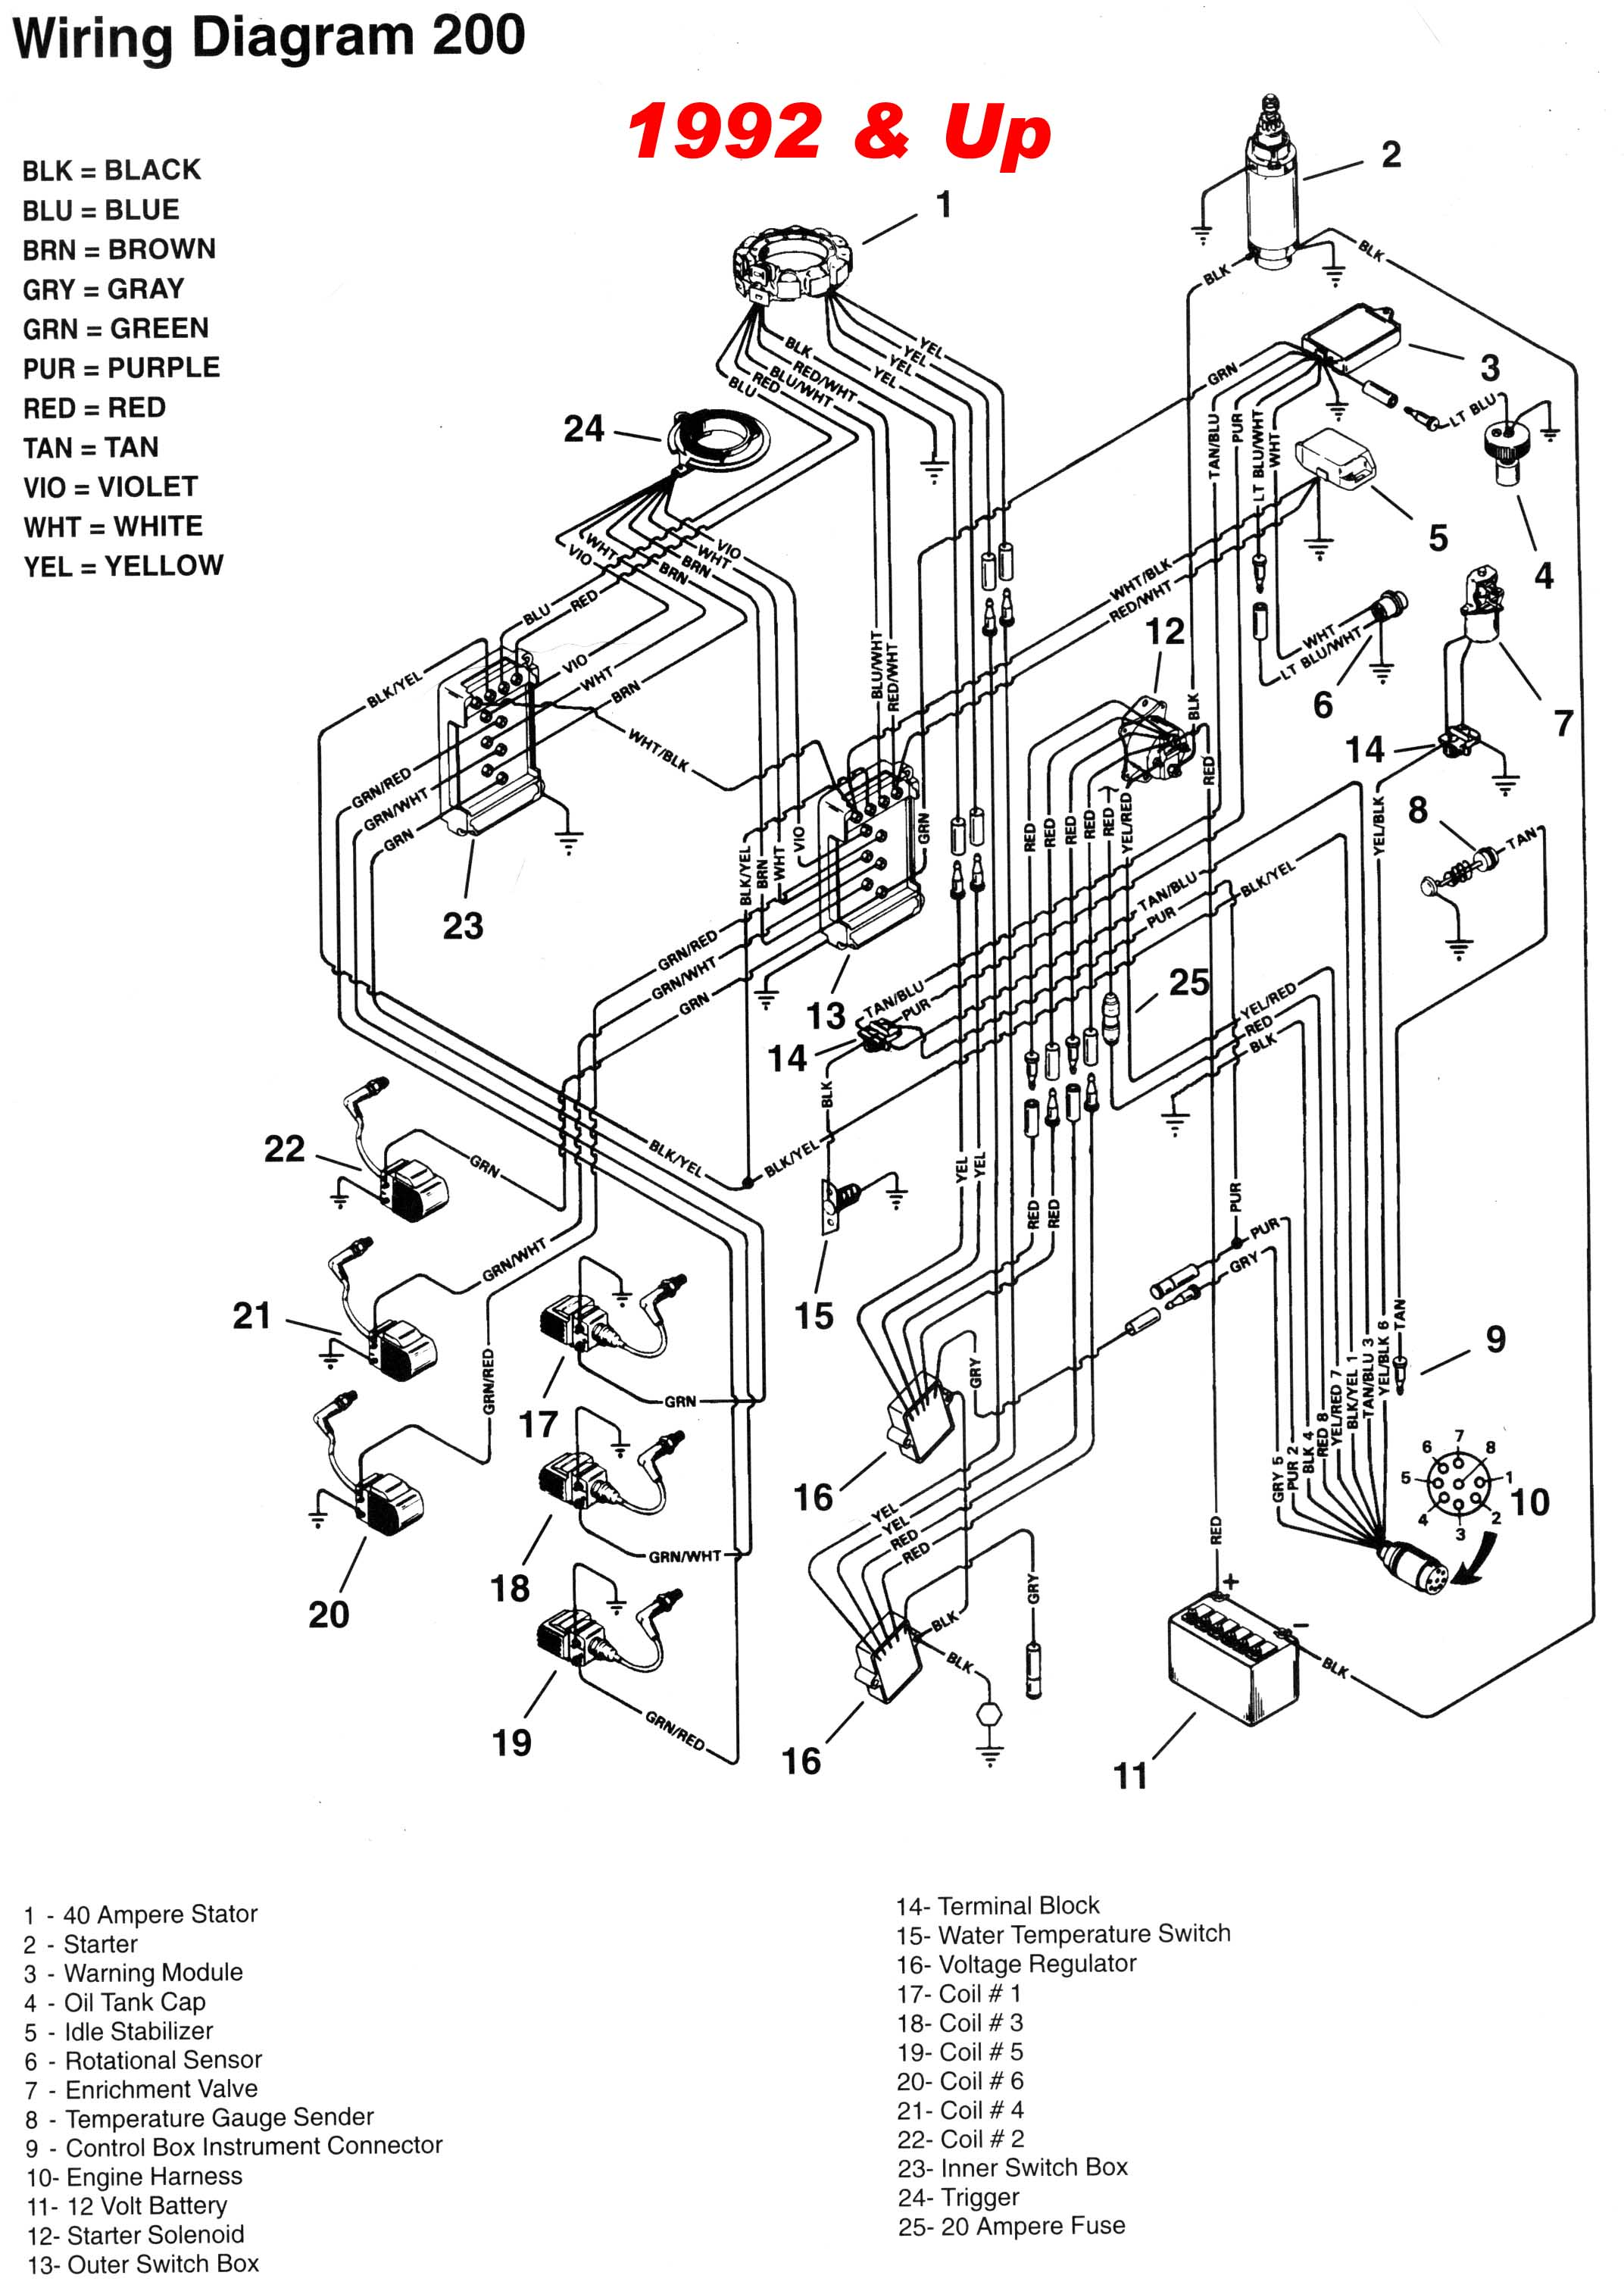 mercury_92up_200_wiring mercury cruiser outboard wiring diagram on mercury download mercury 8 pin wiring diagram at edmiracle.co